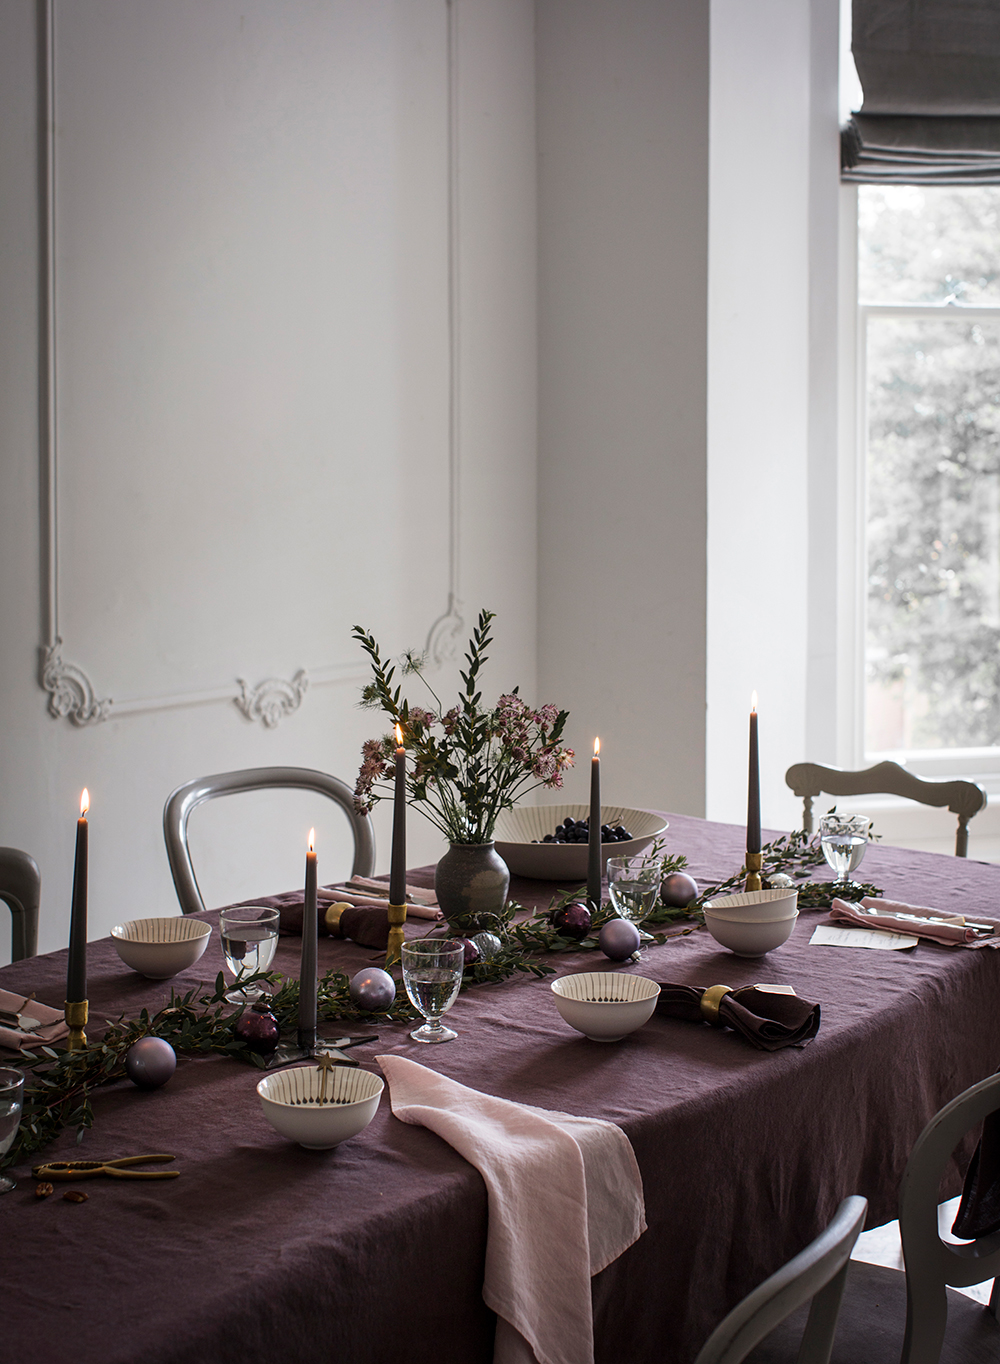 THE-LINEN-WORKS-I-Table-Linen-Aubergine-Tablecloth;-Rose-Napkin.jpg